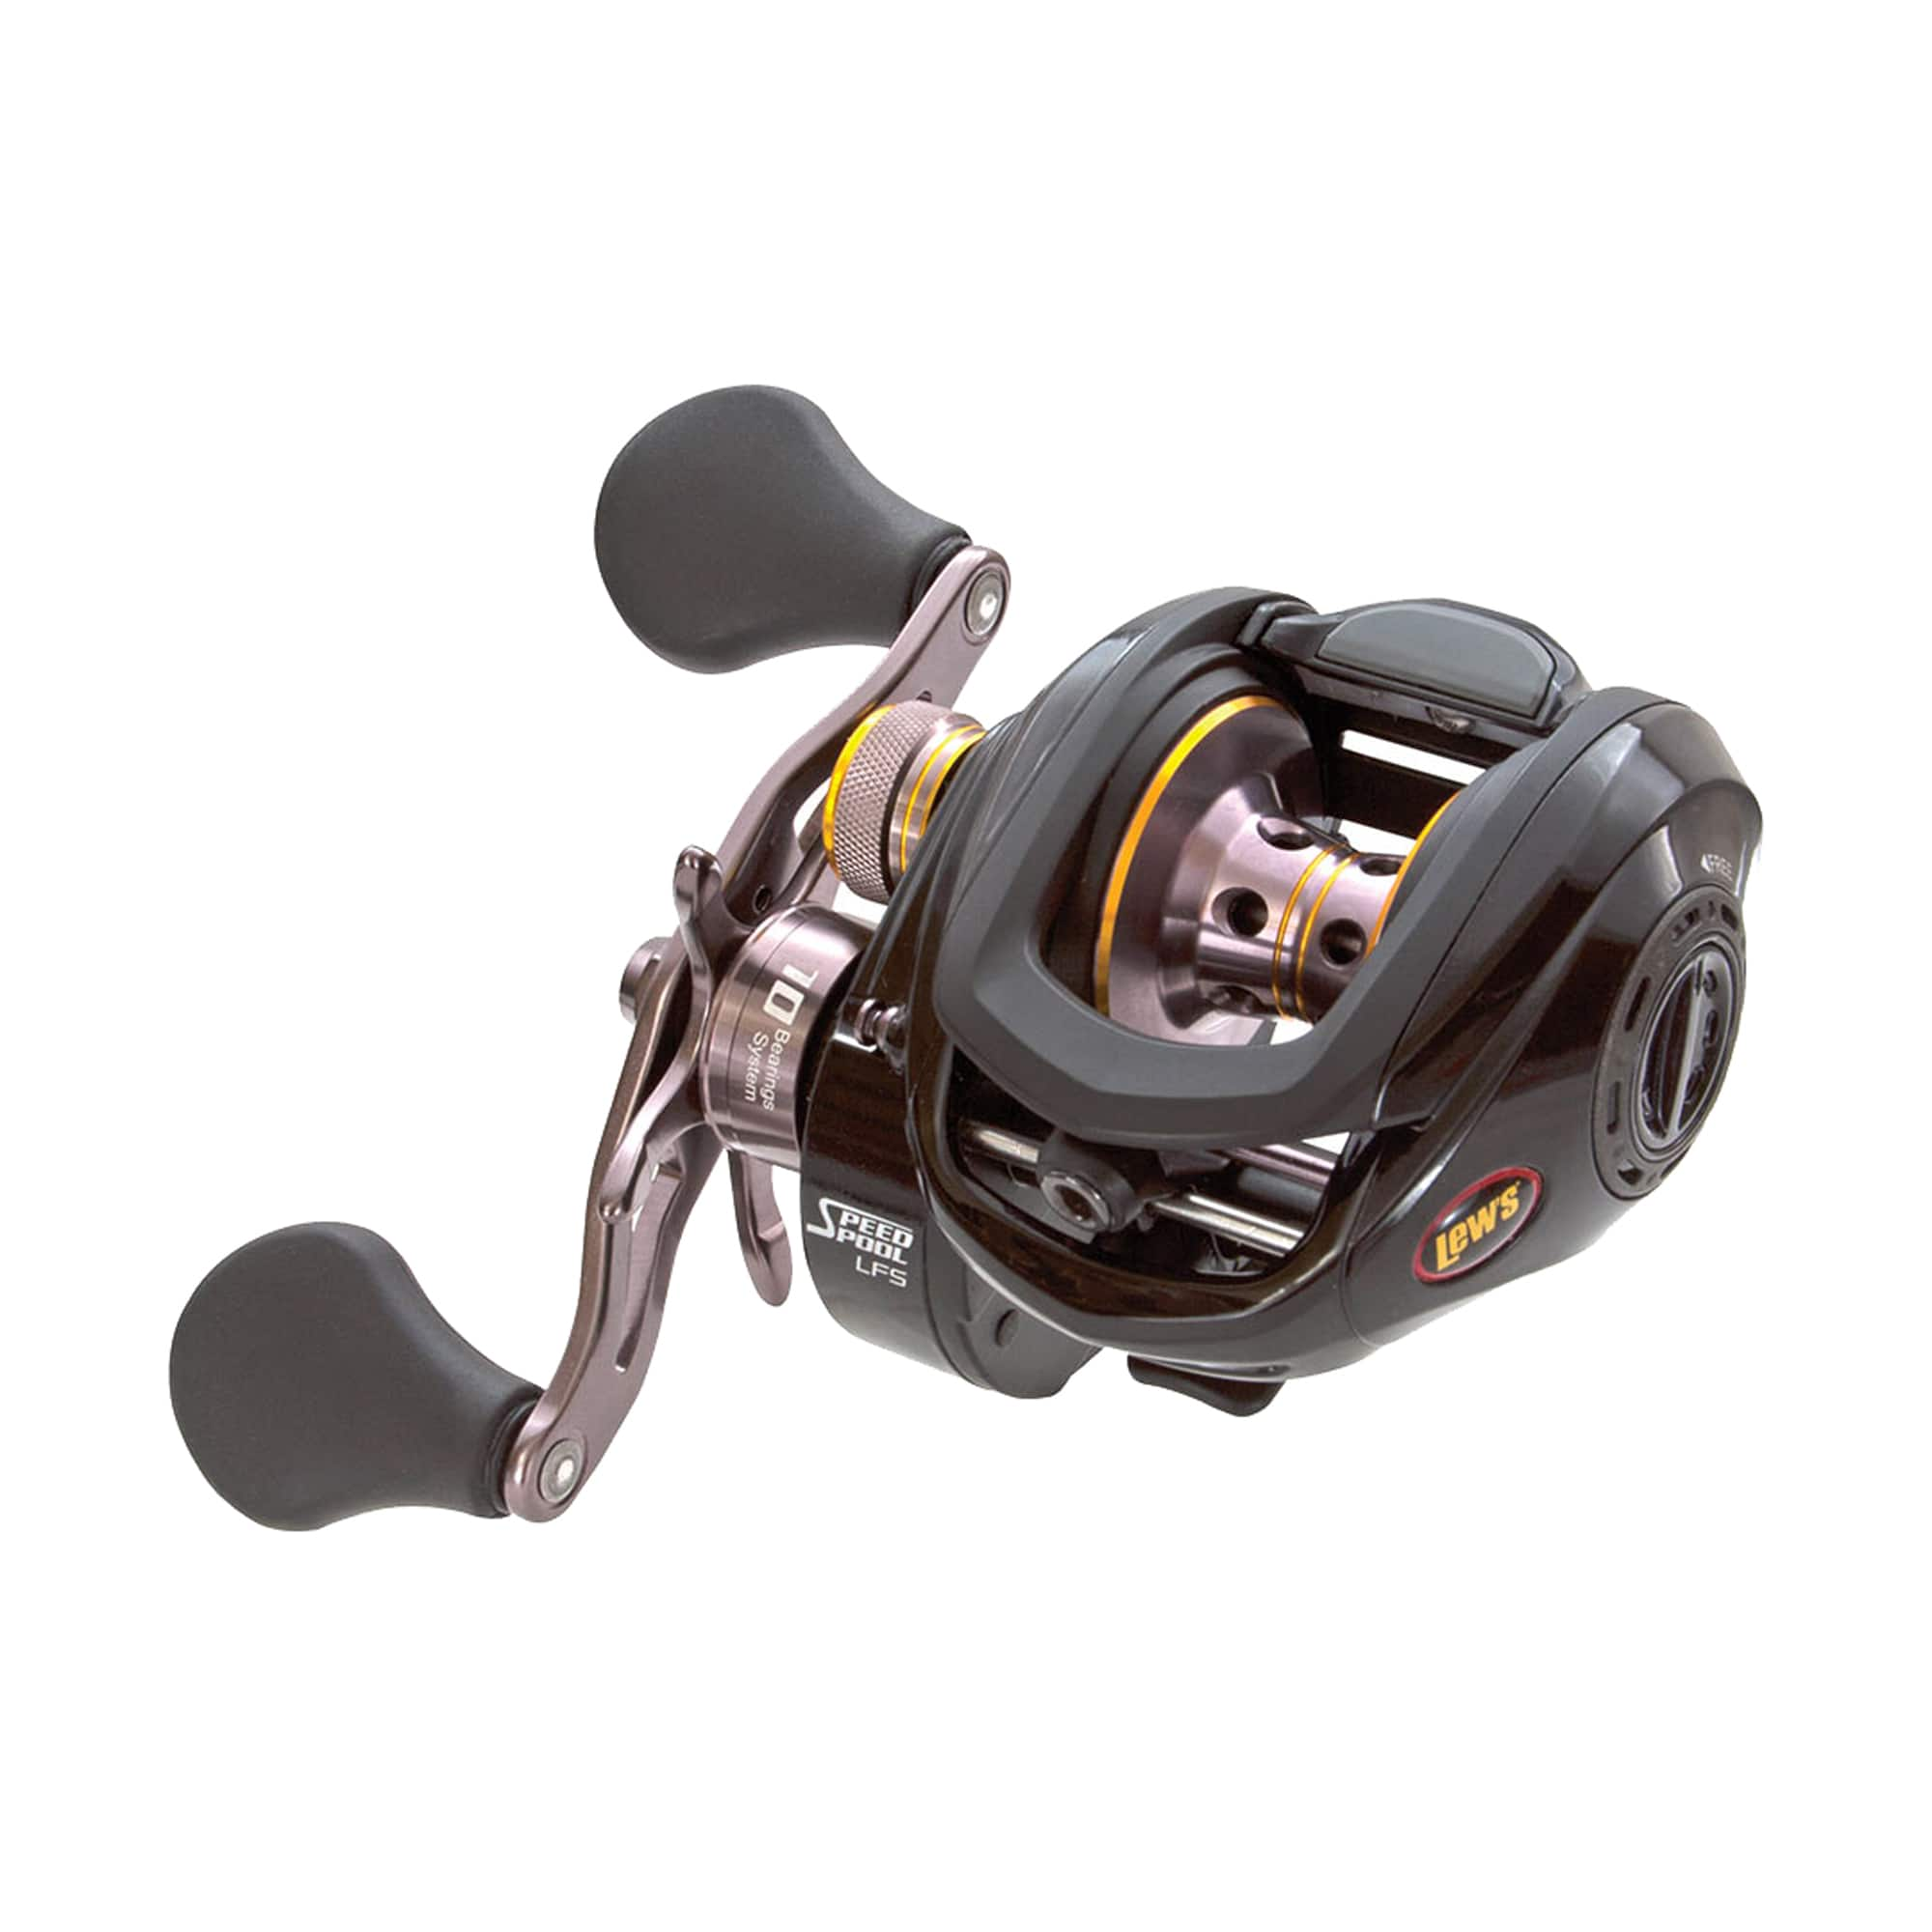 Lew's Tournament MB Speed Spool Baitcasting Reel - $82 Shipped @ Dick's Sporting Goods $81.58